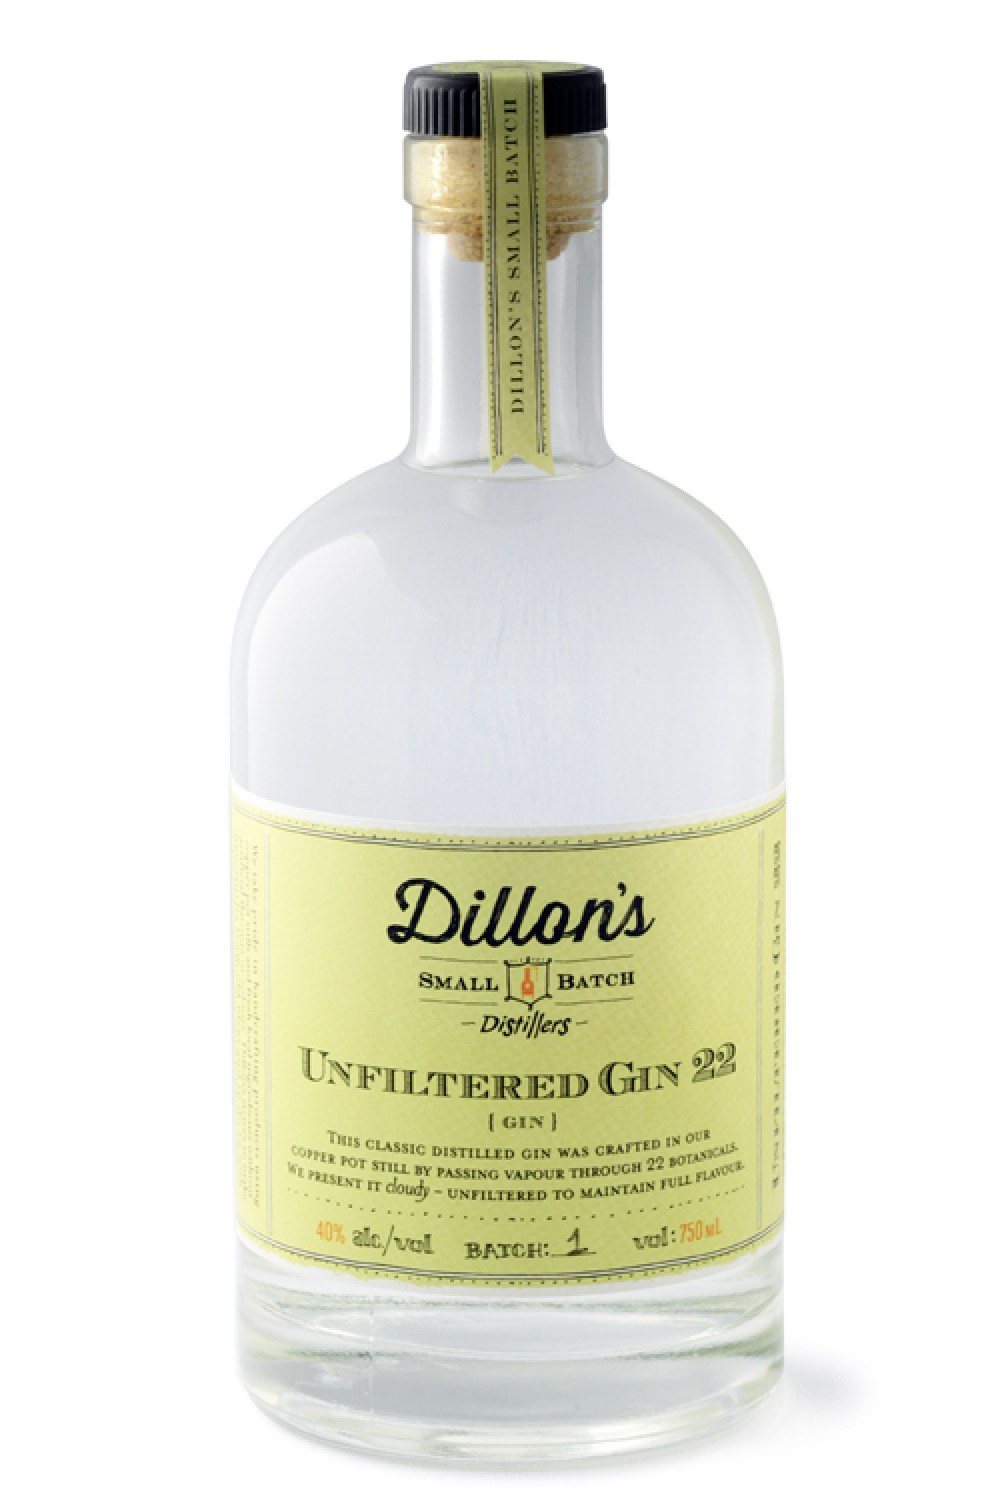 dillons_gin22_large